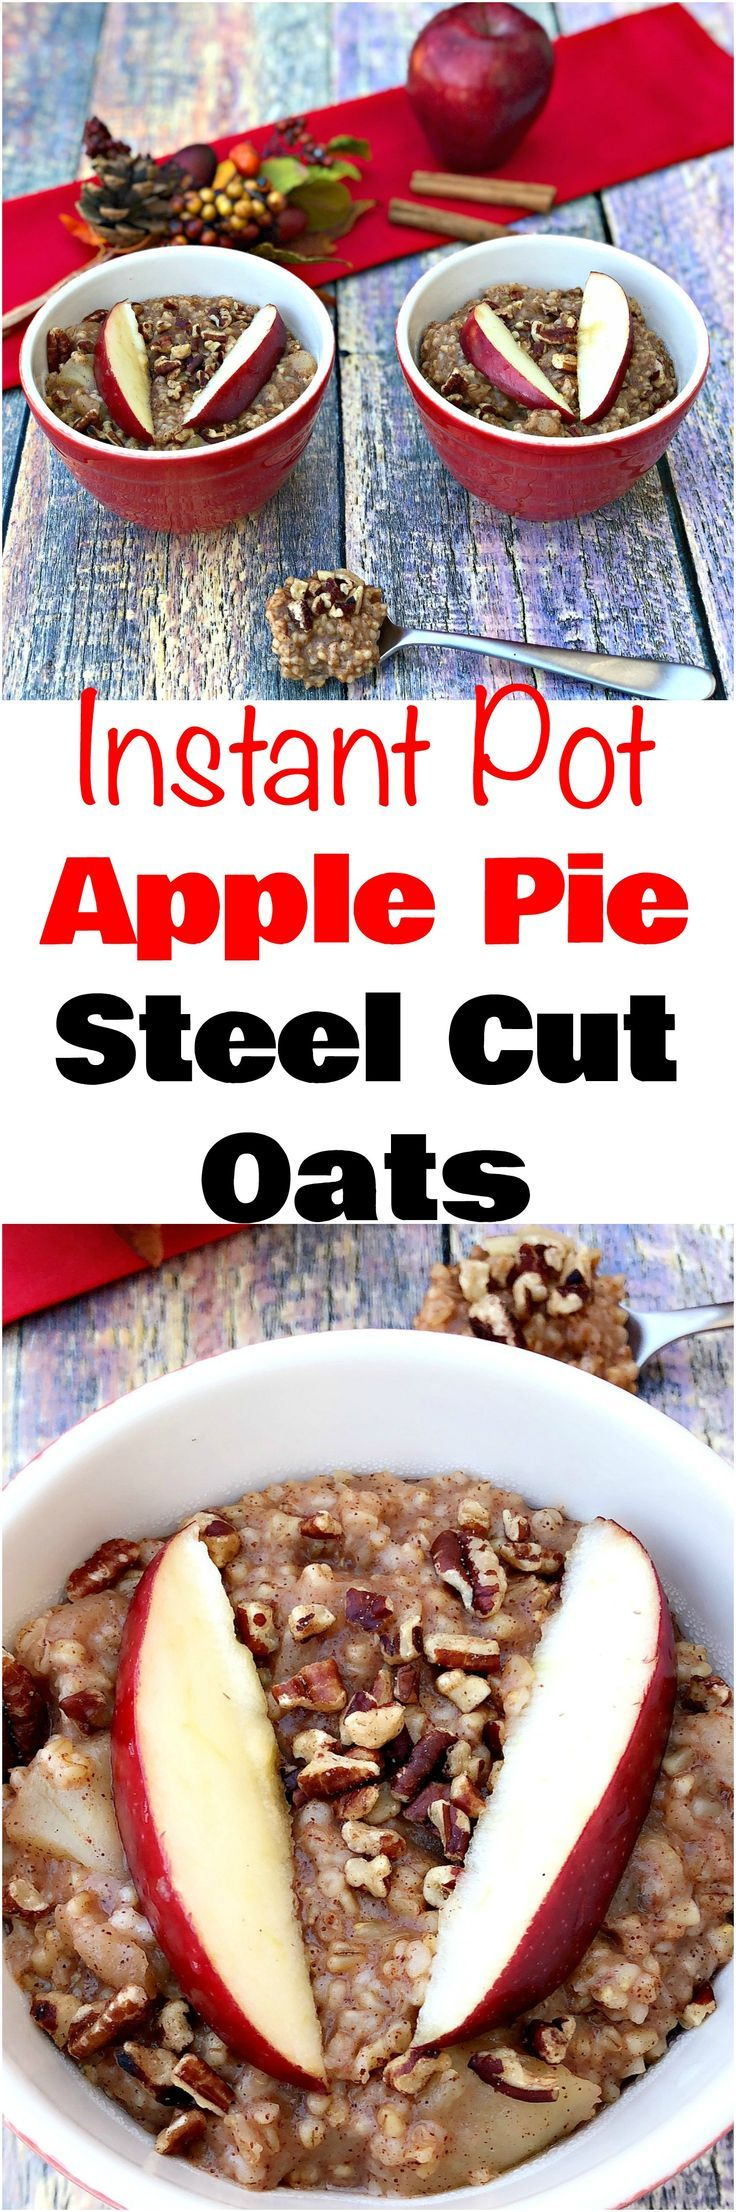 Instant Pot Apple Pie Steel Cut Oats Oatmeal is a vegan, dairy-free, refined-sugar free pressure cooker recipe that is perfect for overnight, make-ahead breakfast, and meal prep. This healthy dish is quick and easy to make. #InstantPot #PressureCooker #InstantPotRecipes #PressureCookerRecipes #Oatmeal #SteelCutOats